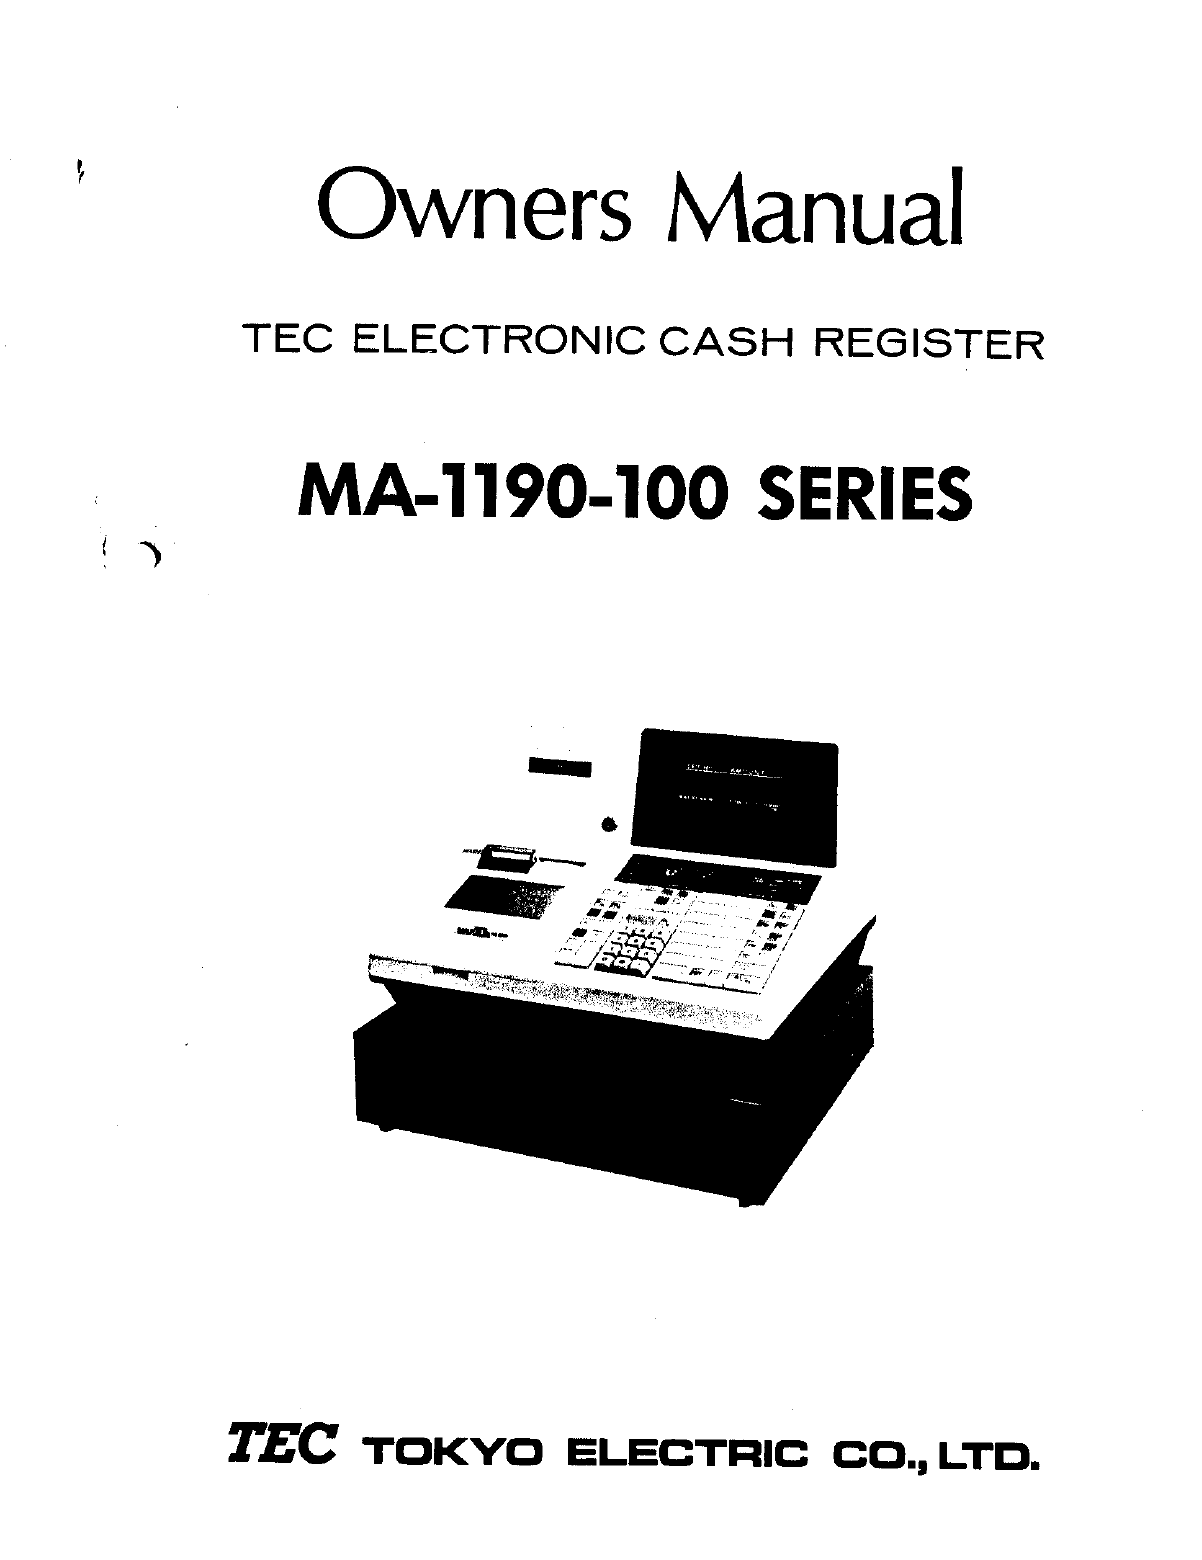 Toshiba Cash Register MA-1190 manual